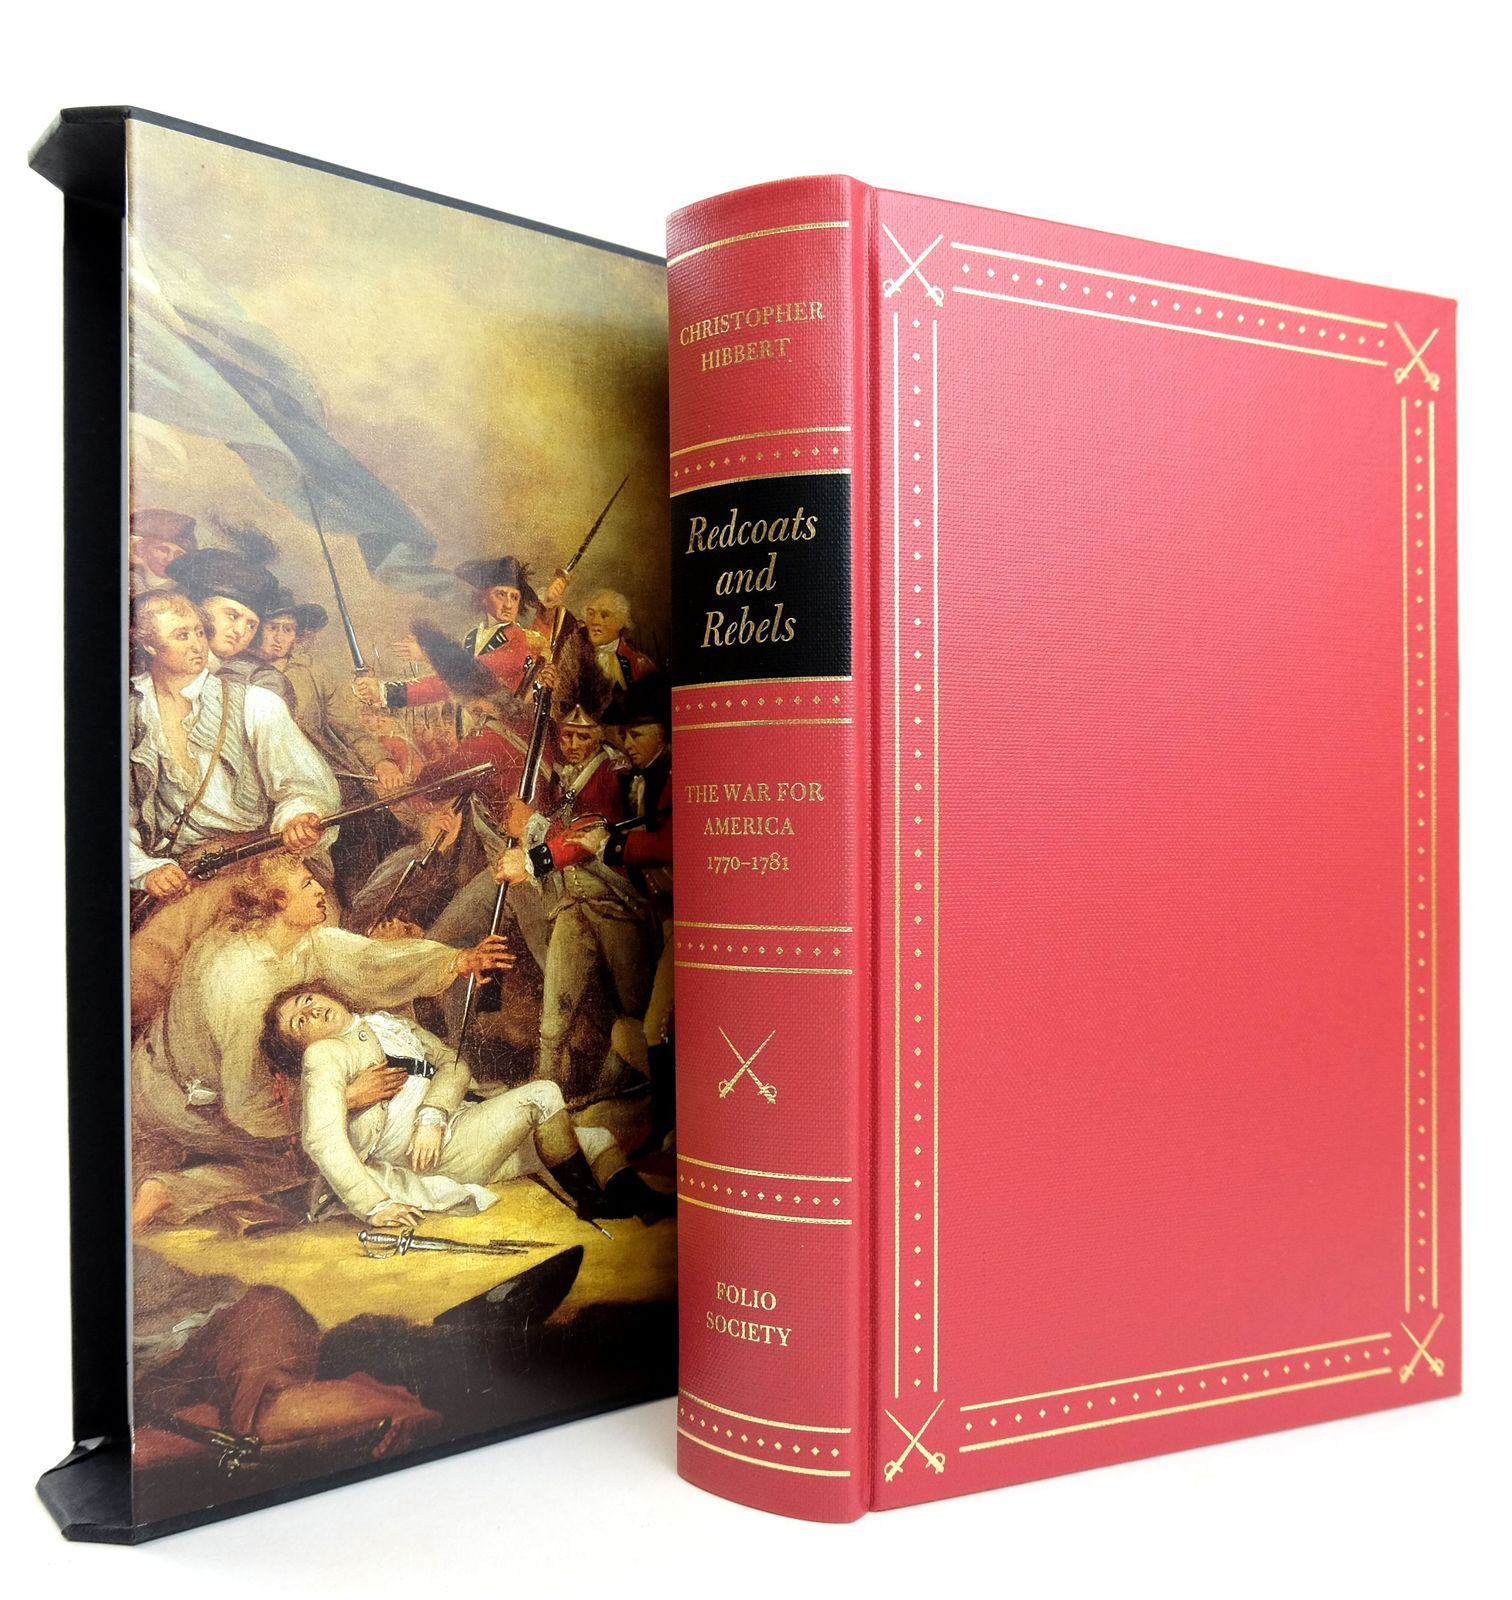 Photo of REDCOATS AND REBELS written by Hibbert, Christopher published by Folio Society (STOCK CODE: 1818877)  for sale by Stella & Rose's Books